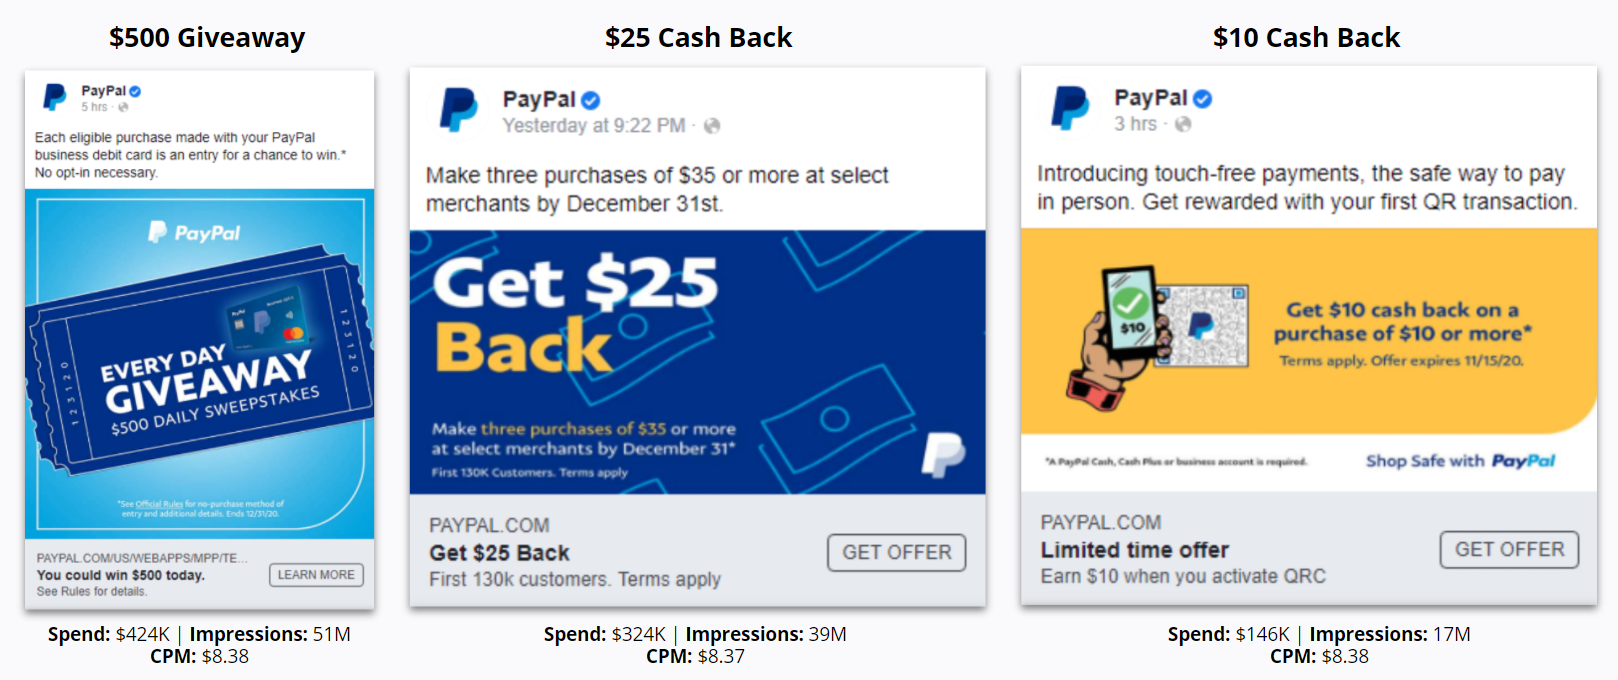 Paypal - Daily Sweepstakes and Giveaways